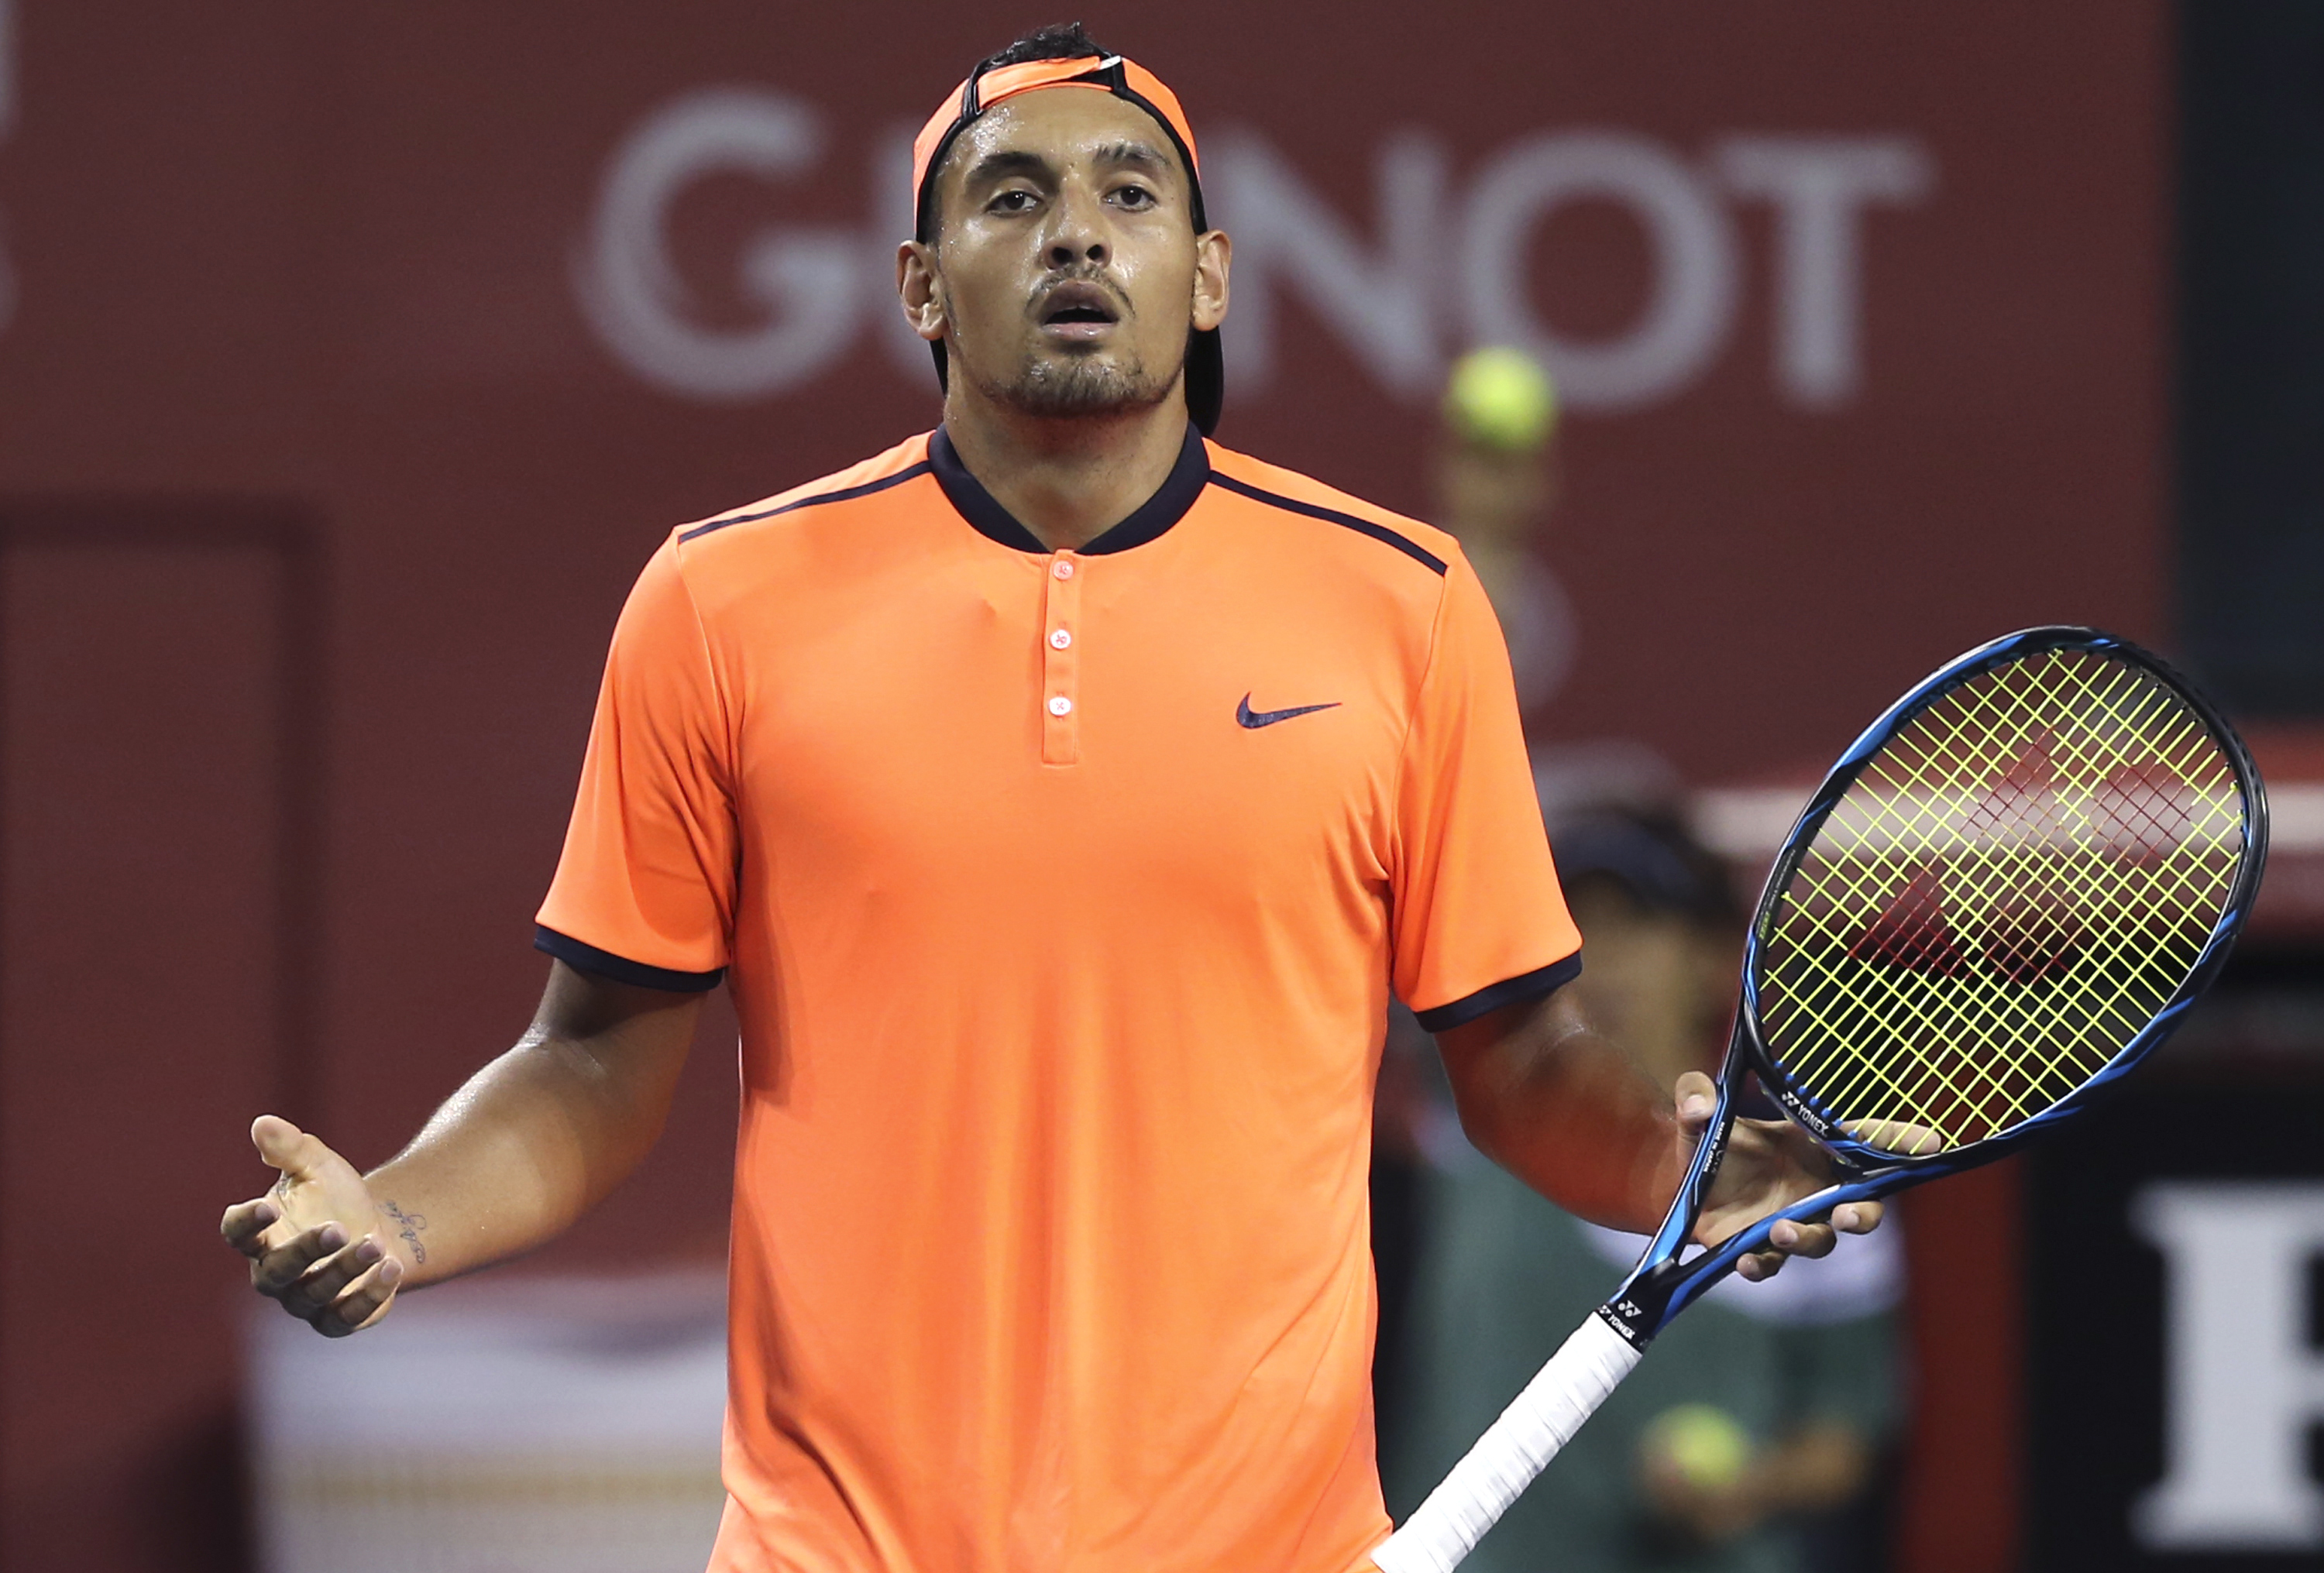 FILE - In this Saturday, Oct. 8, 2016, file photo, Australia's Nick Kyrgios reacts after getting a point against Gael Monfils of France during the semifinal match of Japan Open tennis championships in Tokyo. Kyrgios was booed during a listless 6-3, 6-1 lo